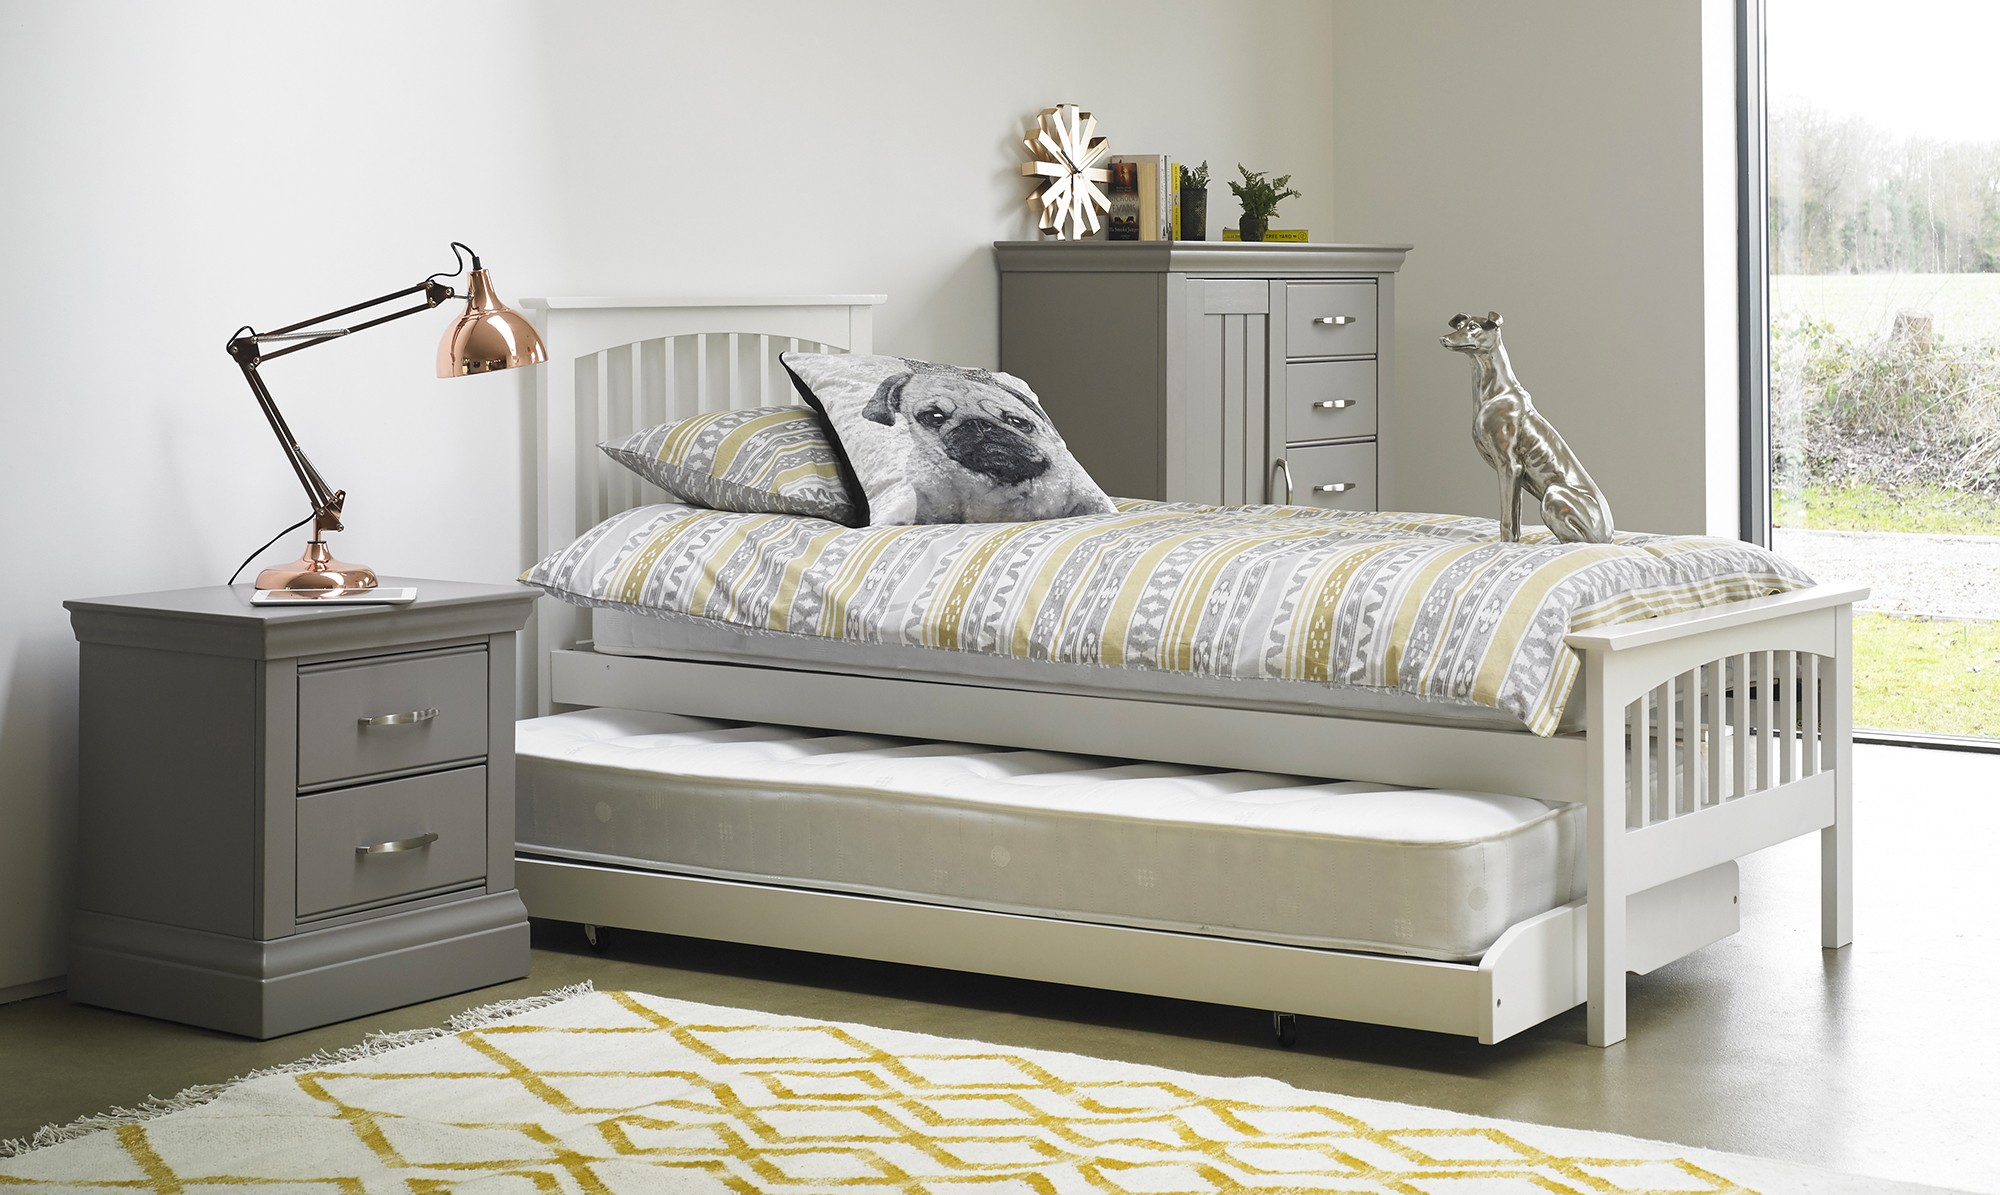 Lucy guest bed